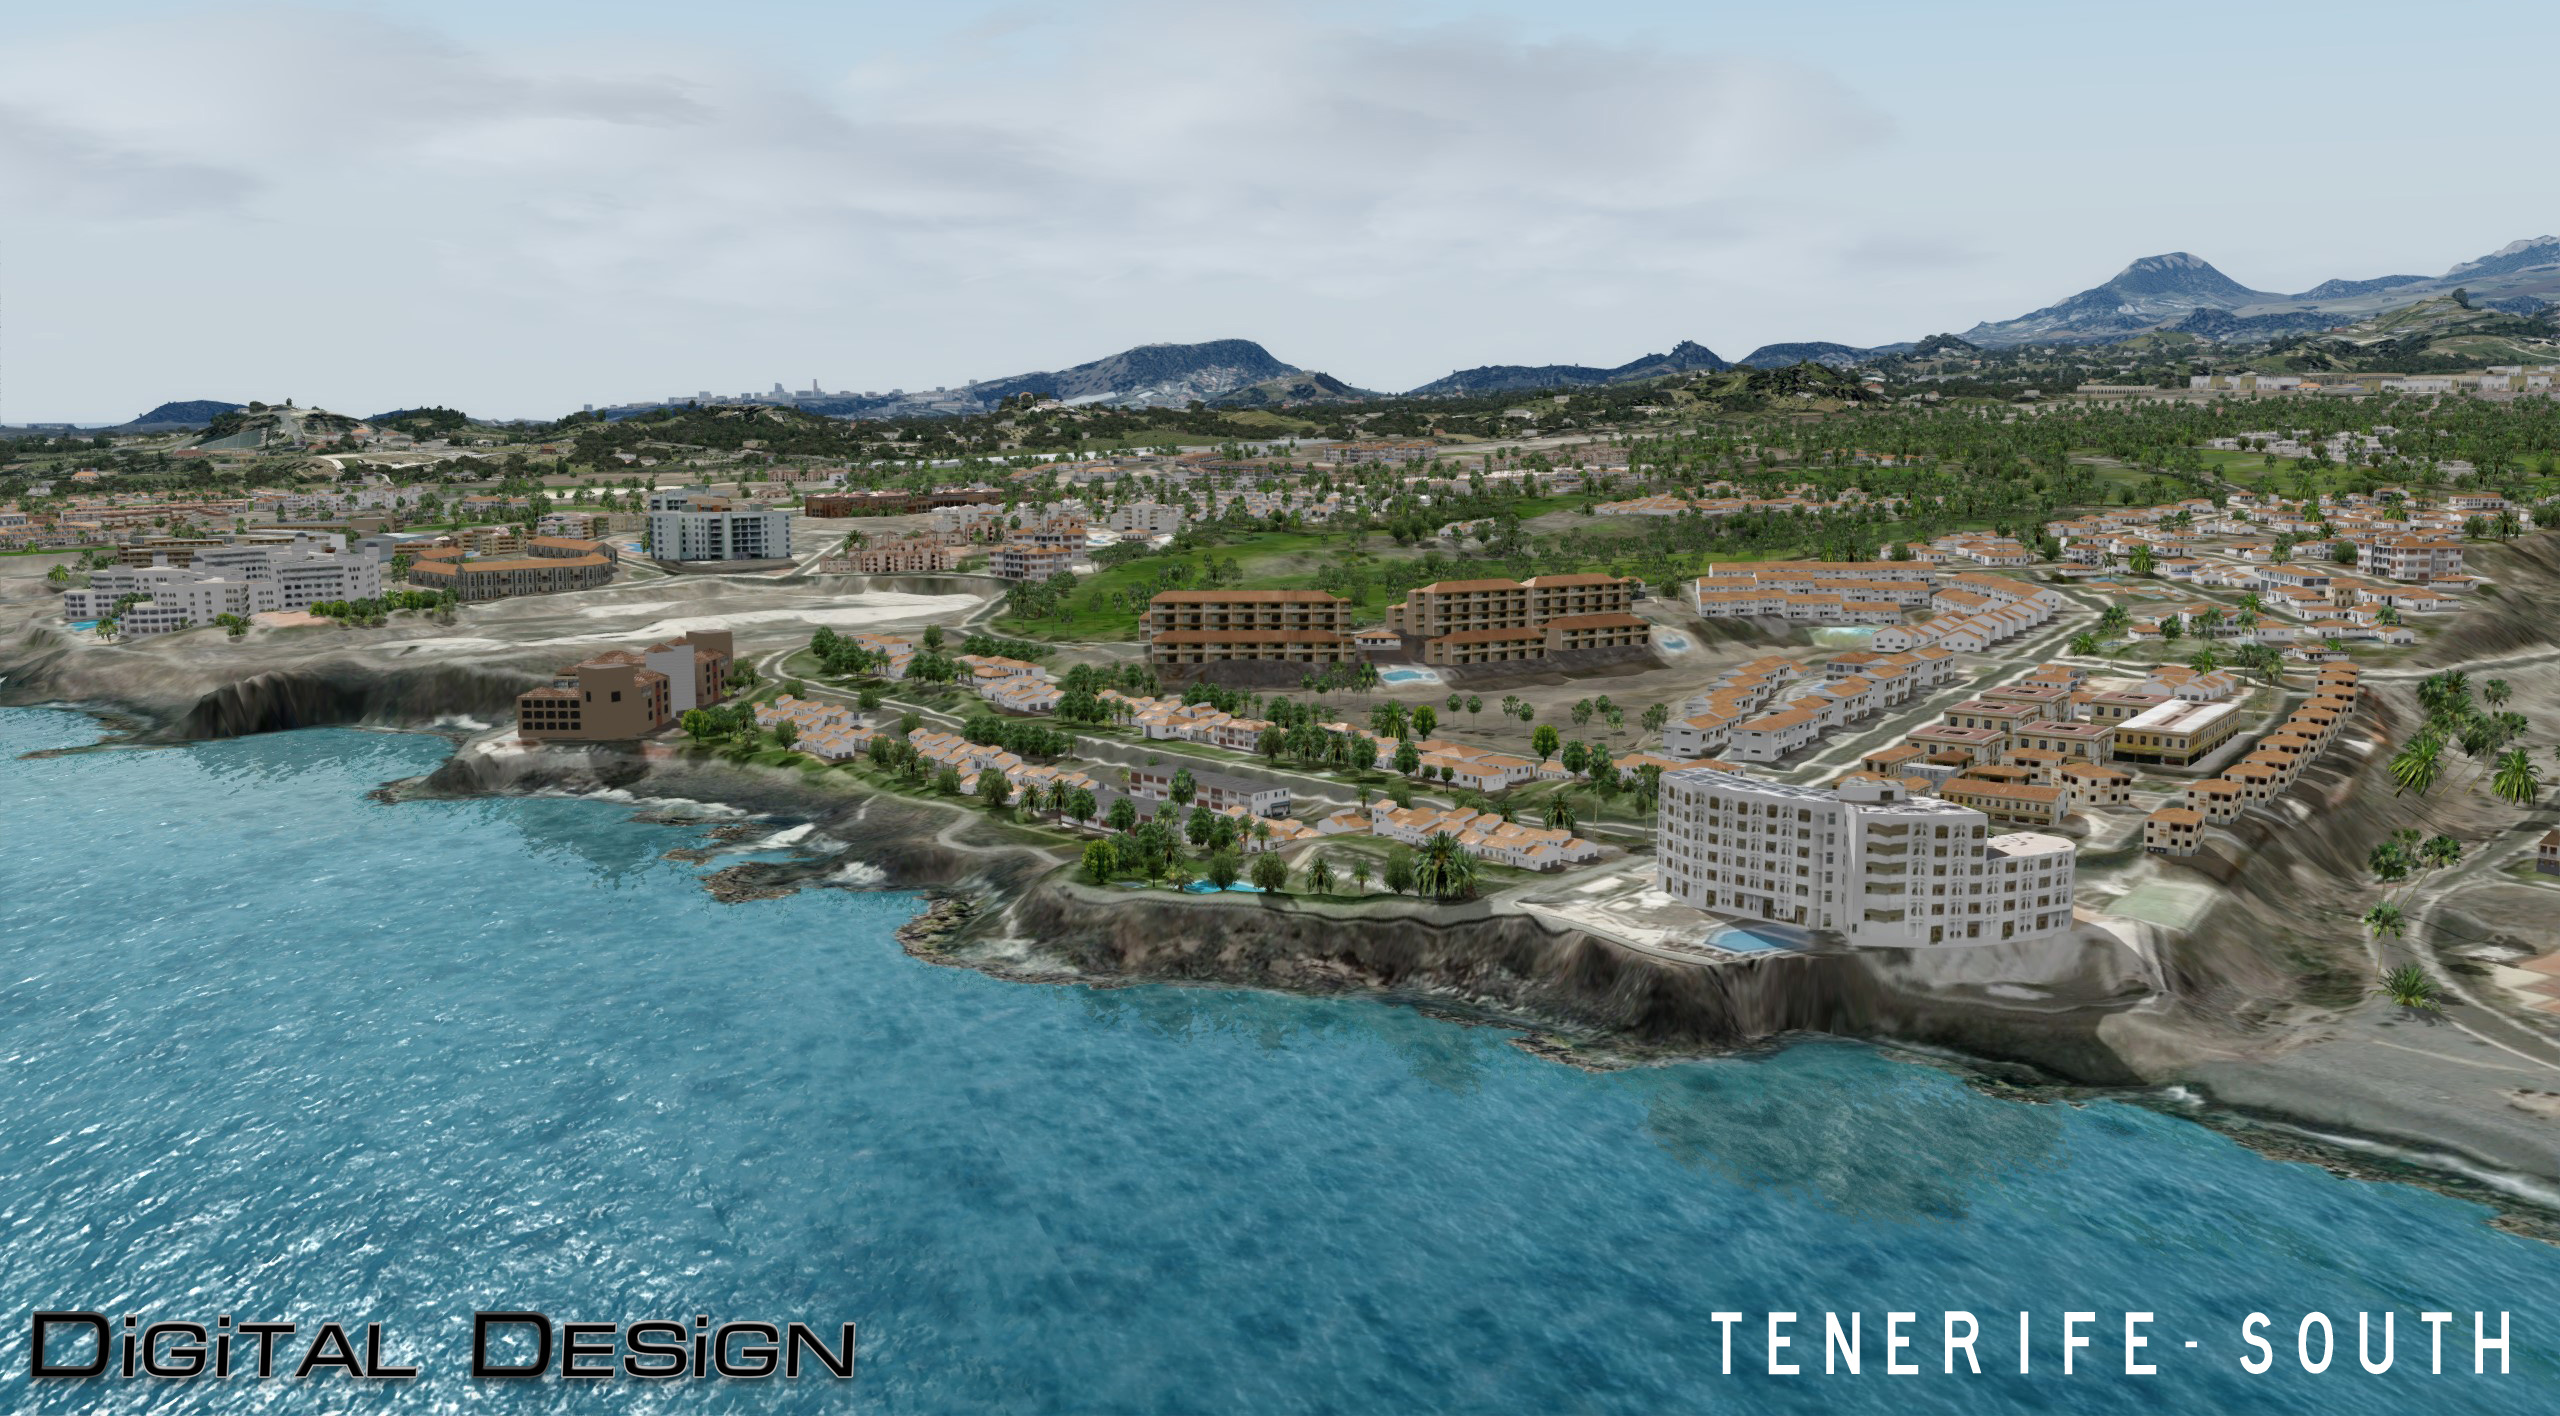 DIGITAL DESIGN - TENERIFE-SOUTH P3D4